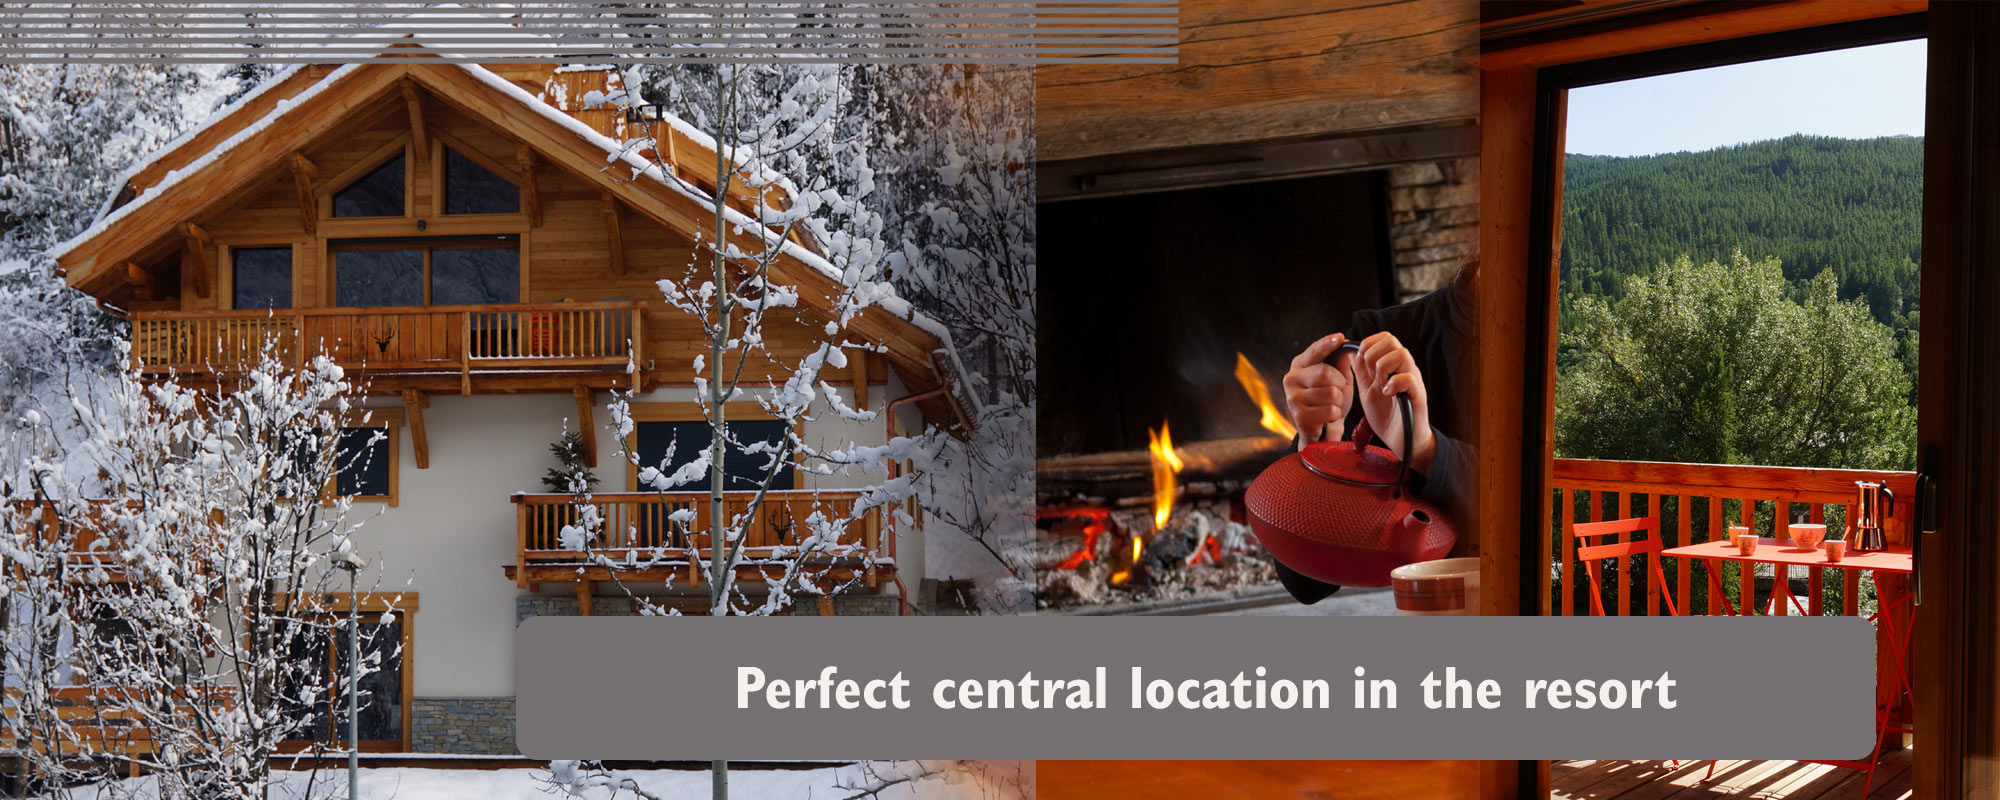 Chalet style luxury apartment for your skiing holidays in Serre Chevalier